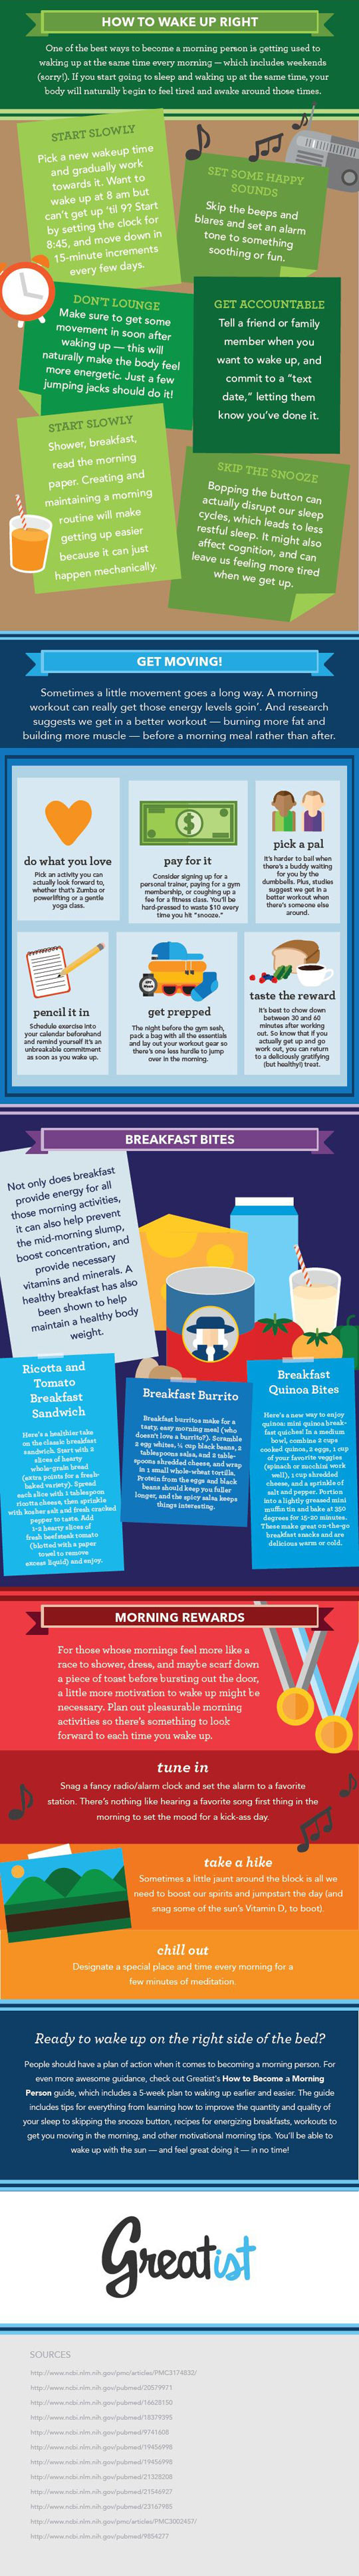 funny-morning-person-clock-wake-up-breakfast